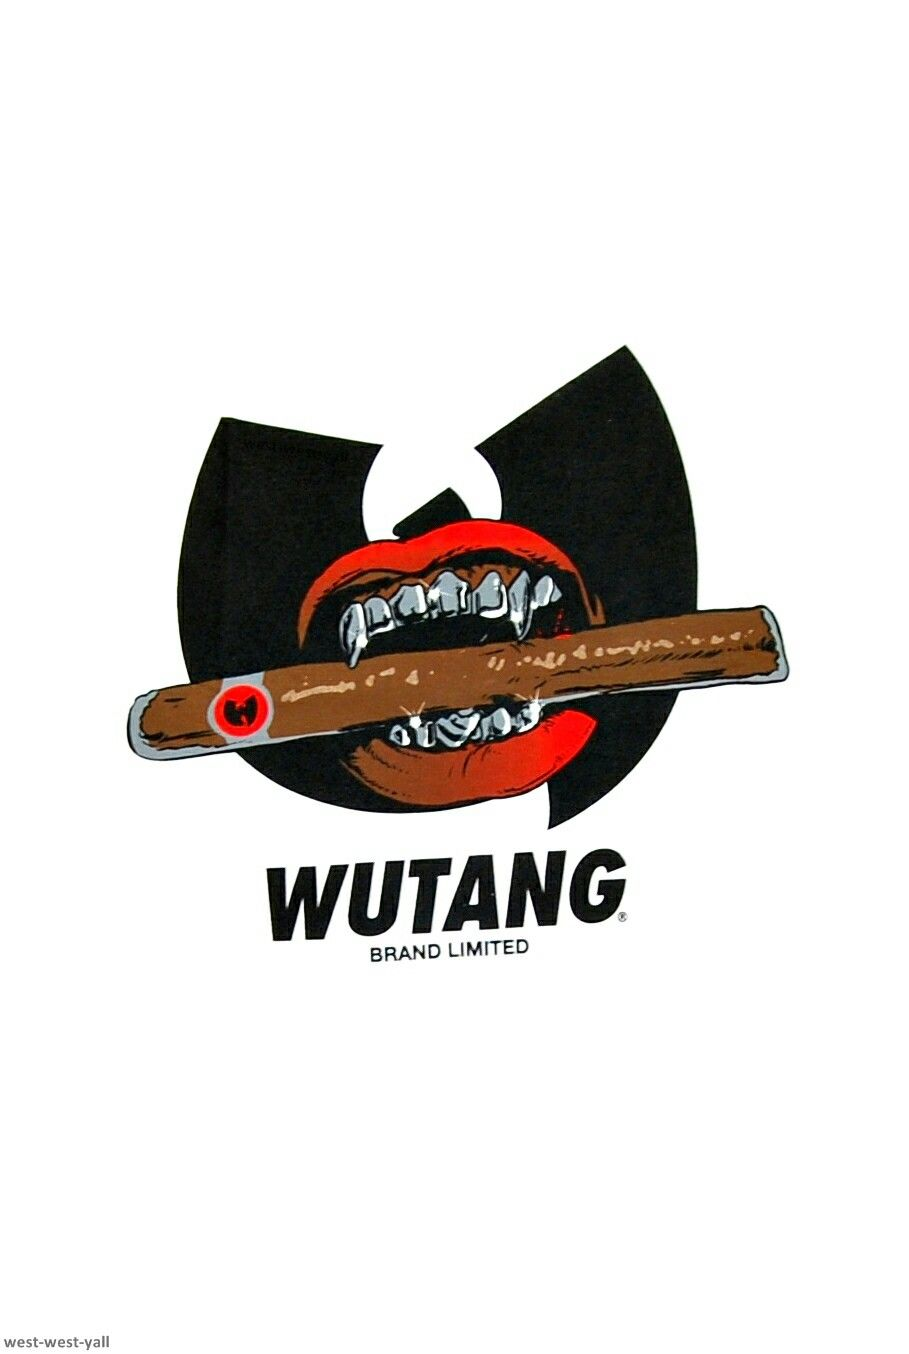 Excited To Share The Latest Addition To My Etsy Shop Wu Tang Clan W Logo Symbol Graphic Premium Vinyl Decal Car Car Decals Vinyl Vinyl Decals Window Stickers [ 2048 x 1536 Pixel ]